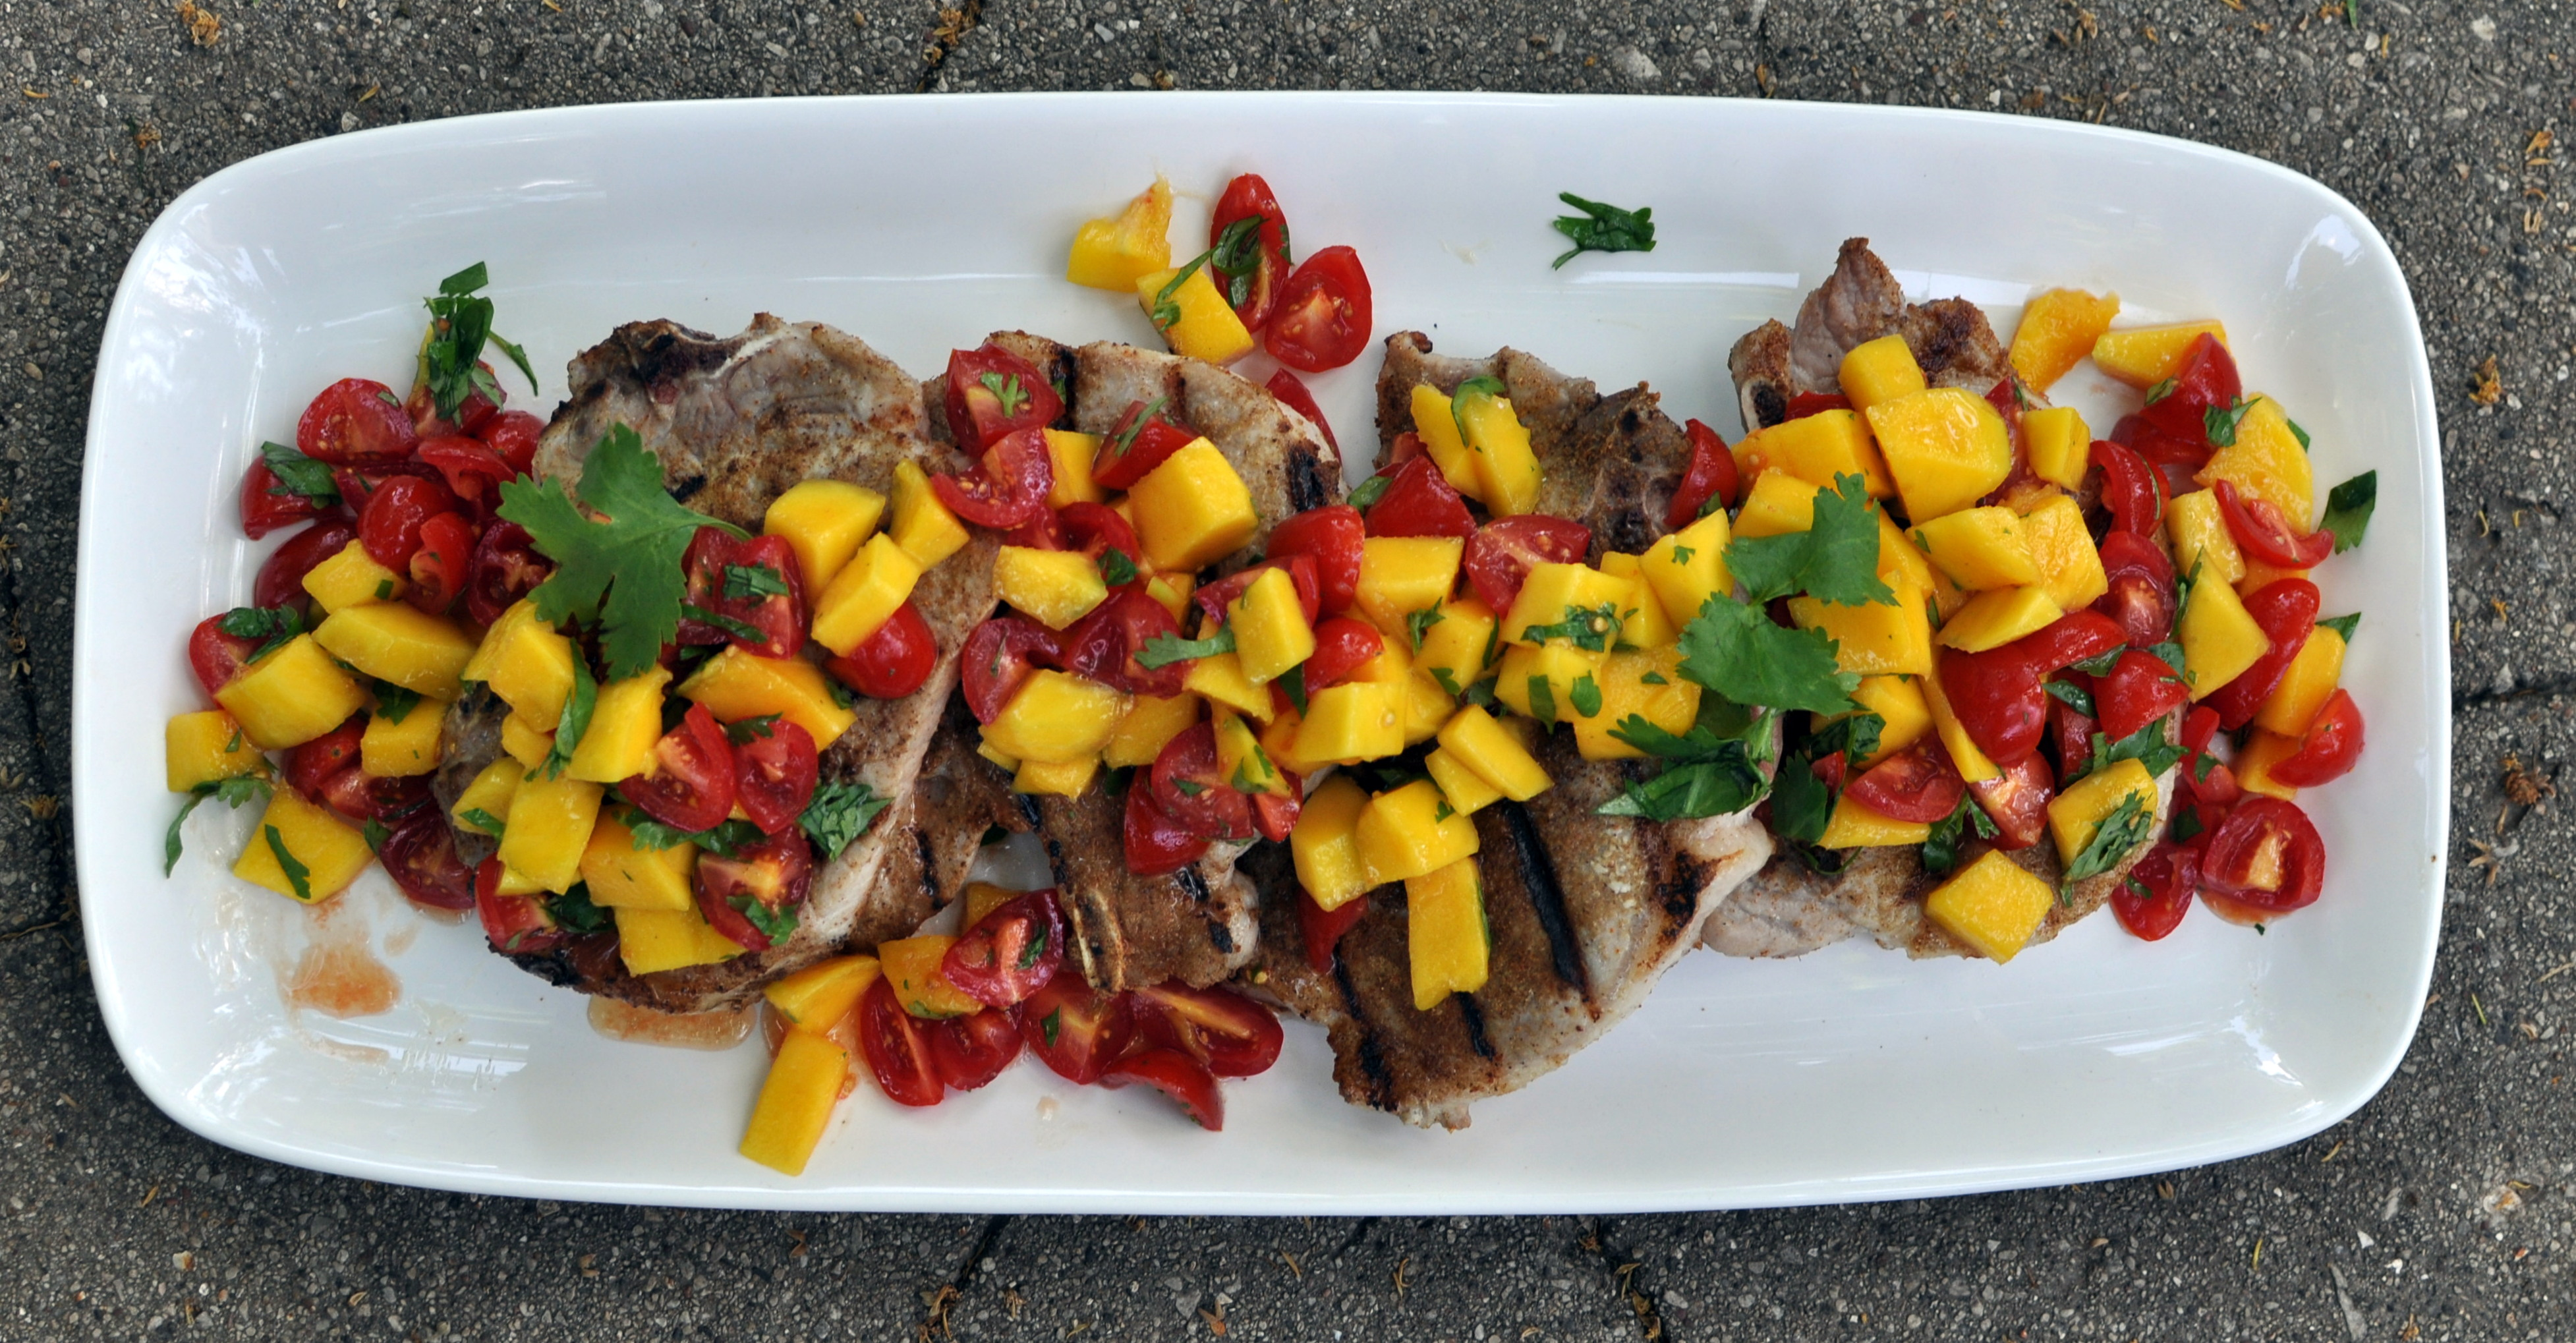 Caribbean Pork Chops with Mango Salsa